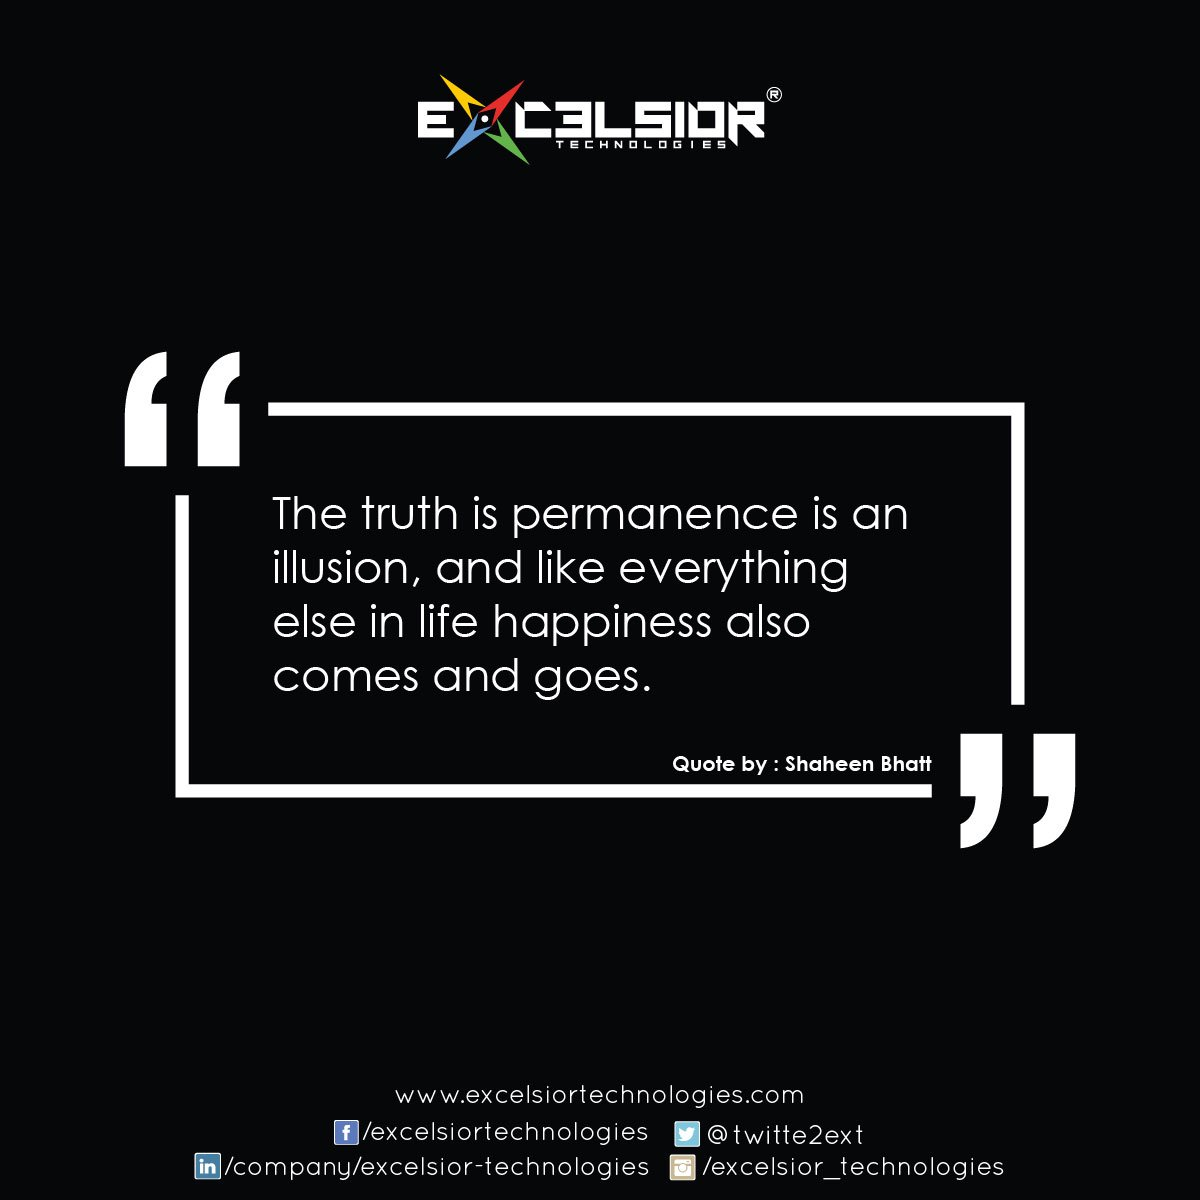 Excelsior On Twitter The Truth Is Permanence Is An Illusion And